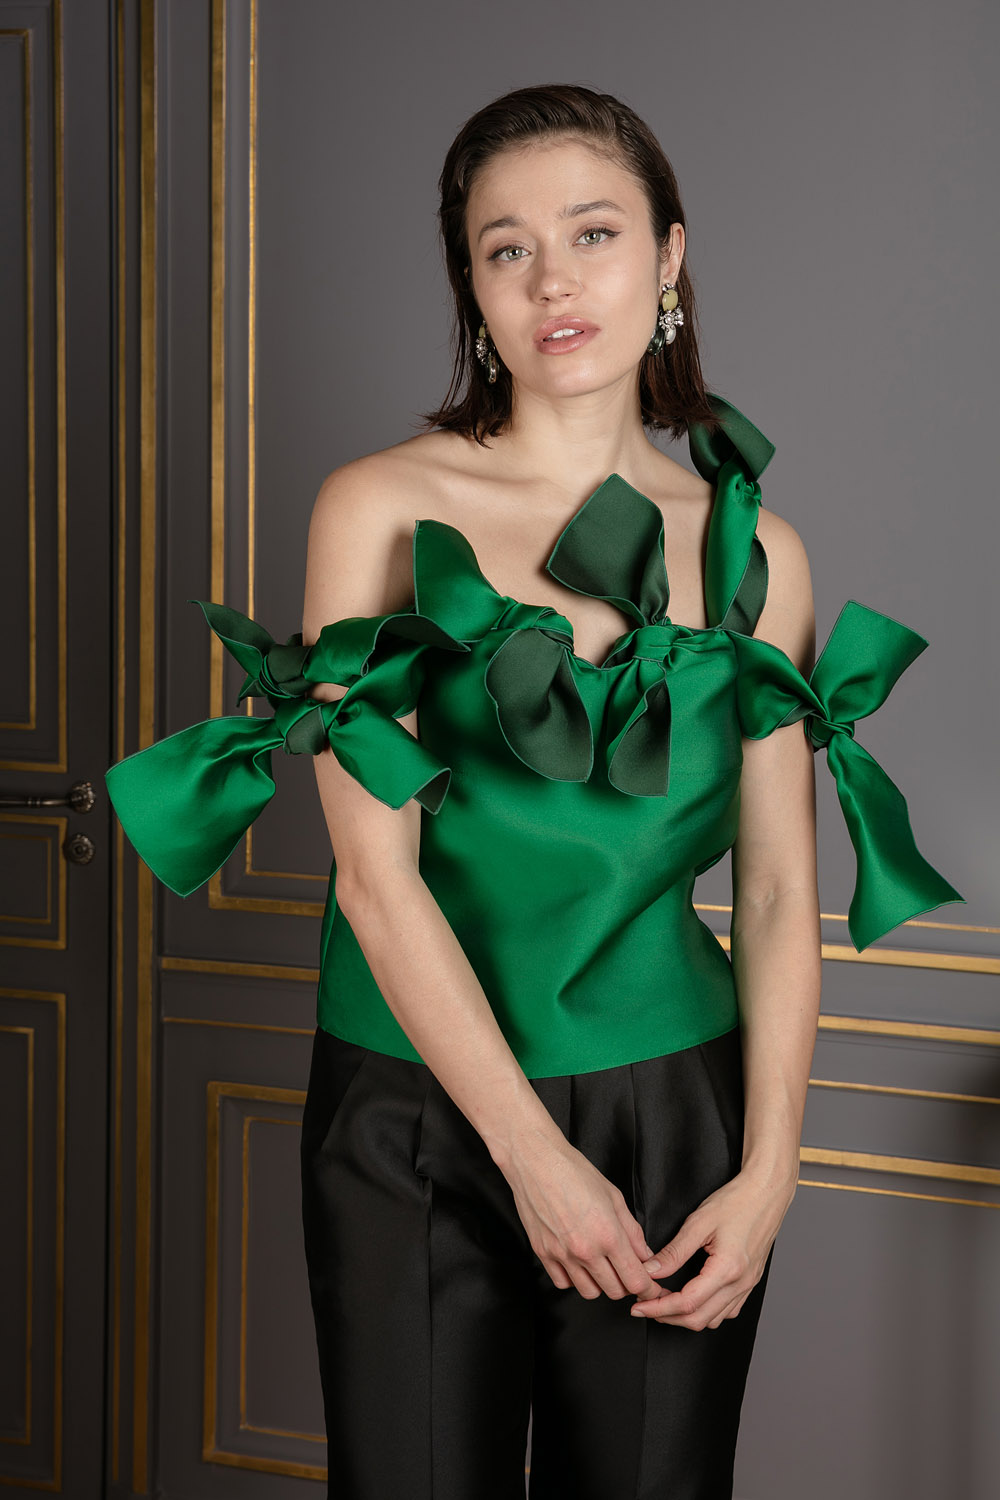 9921bde98 boutiquelessuites.com - LesSuitesOnline buy Maison Rabih Kayrouz - Green  knotted top on our website